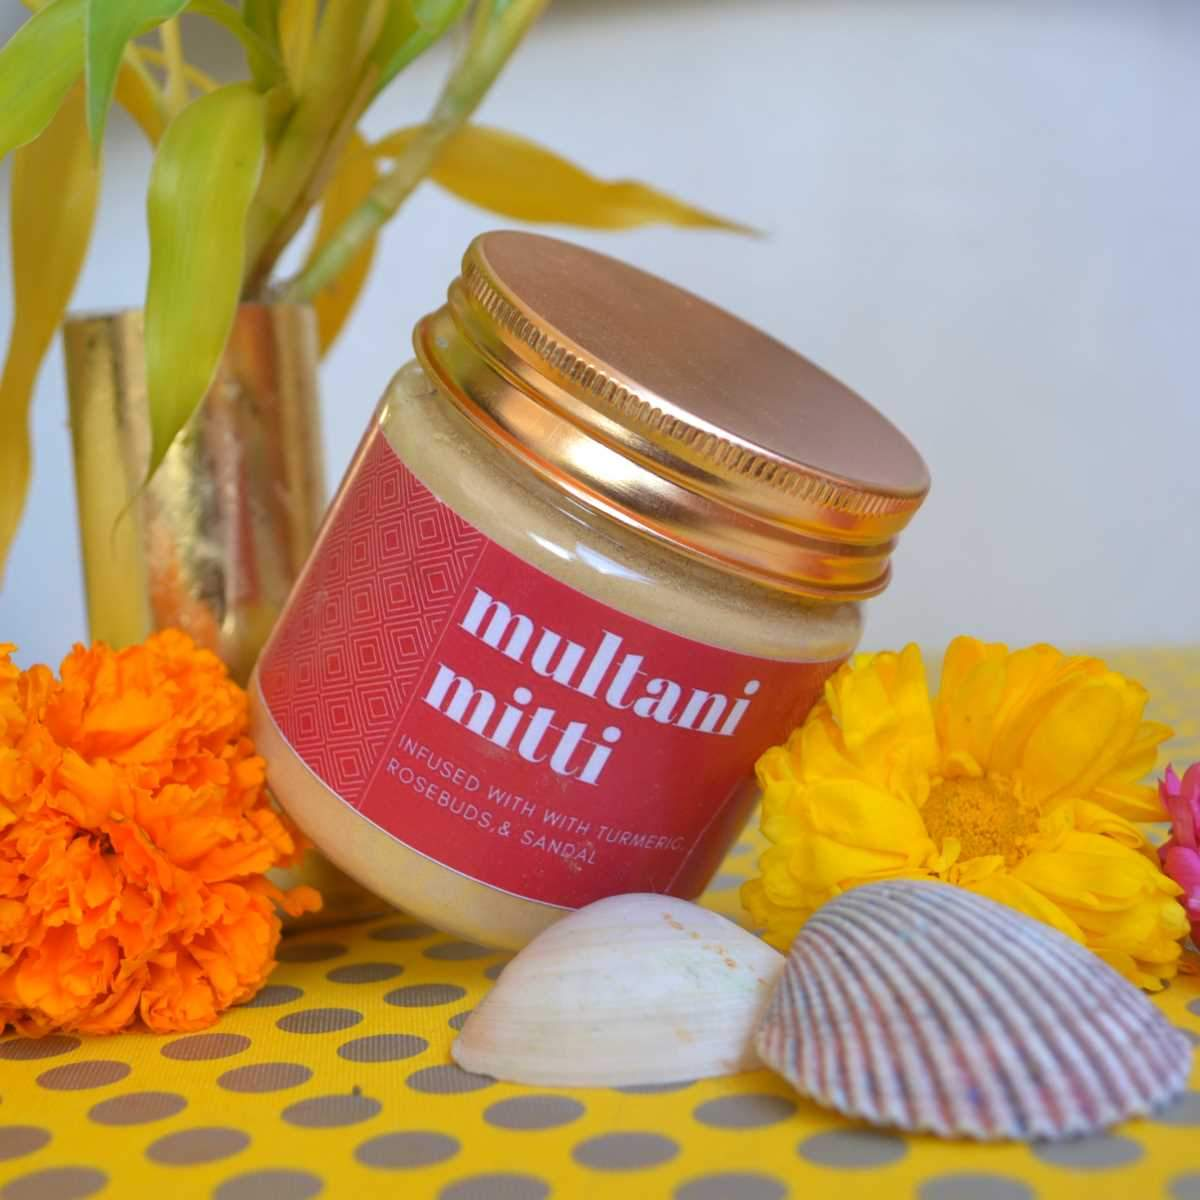 Multani Mitti (Fuller's Earth) Face Pack Powder